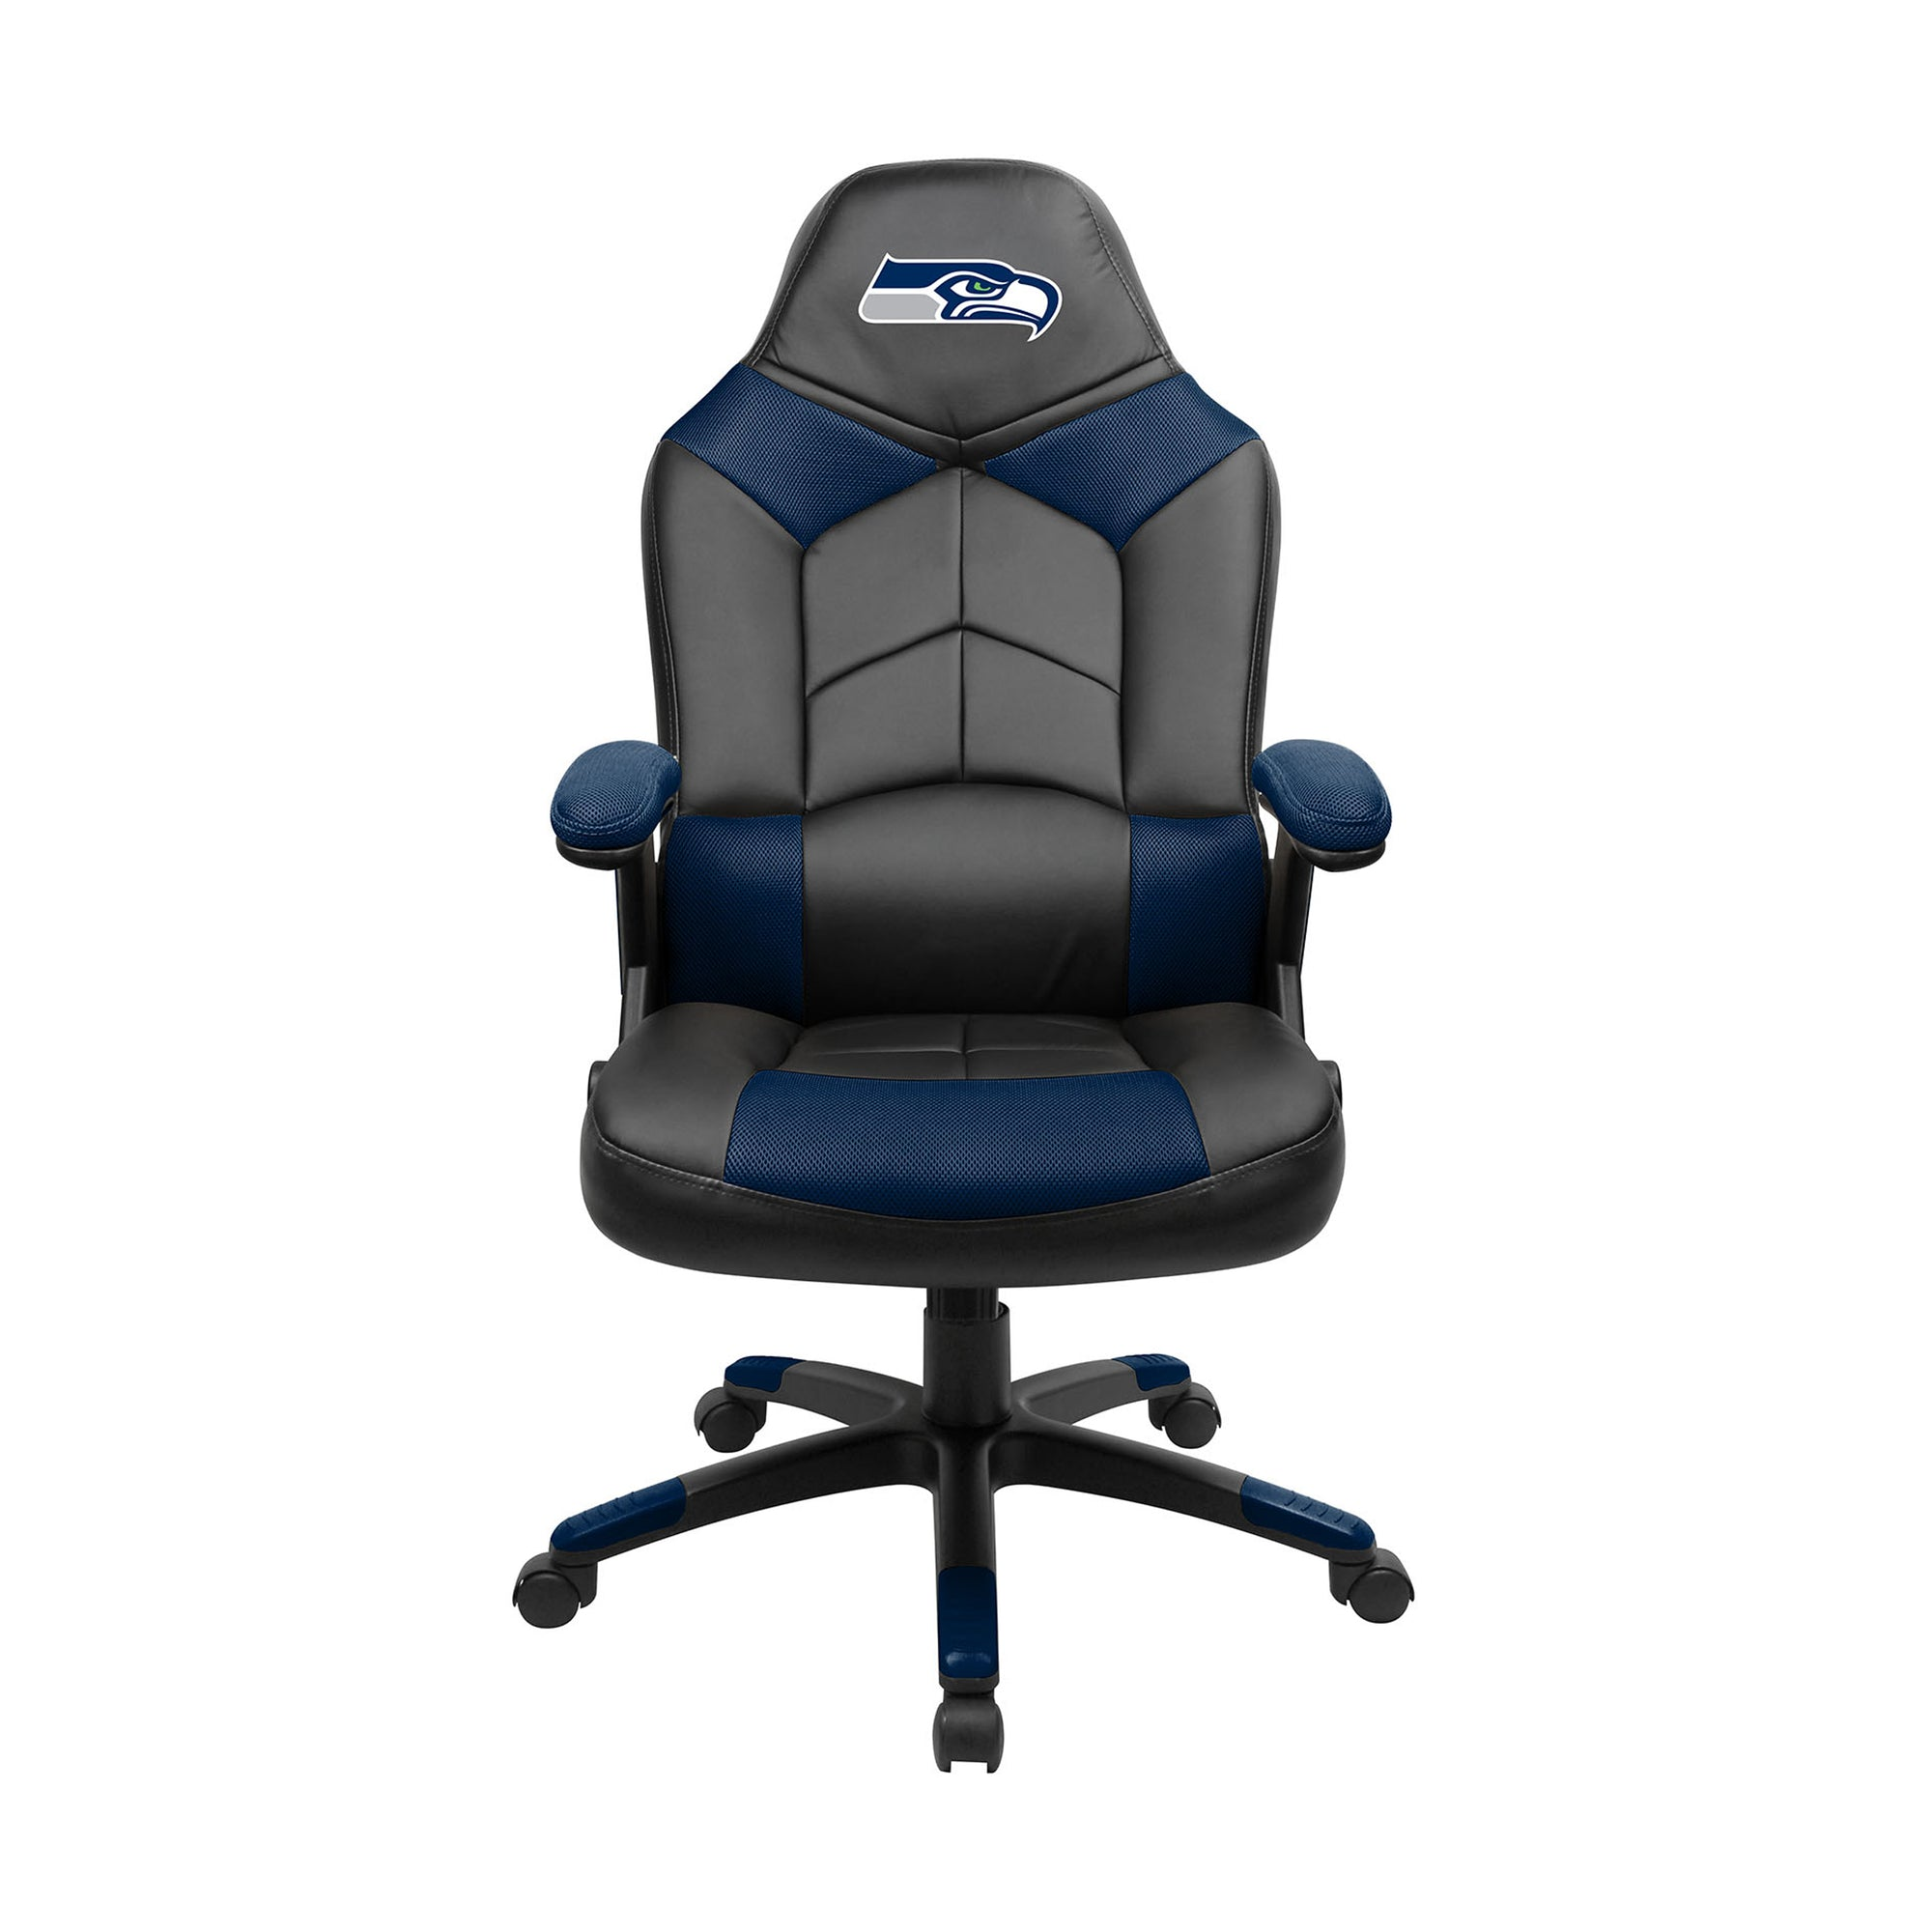 Seatle Seahawks Oversized Gaming Chair